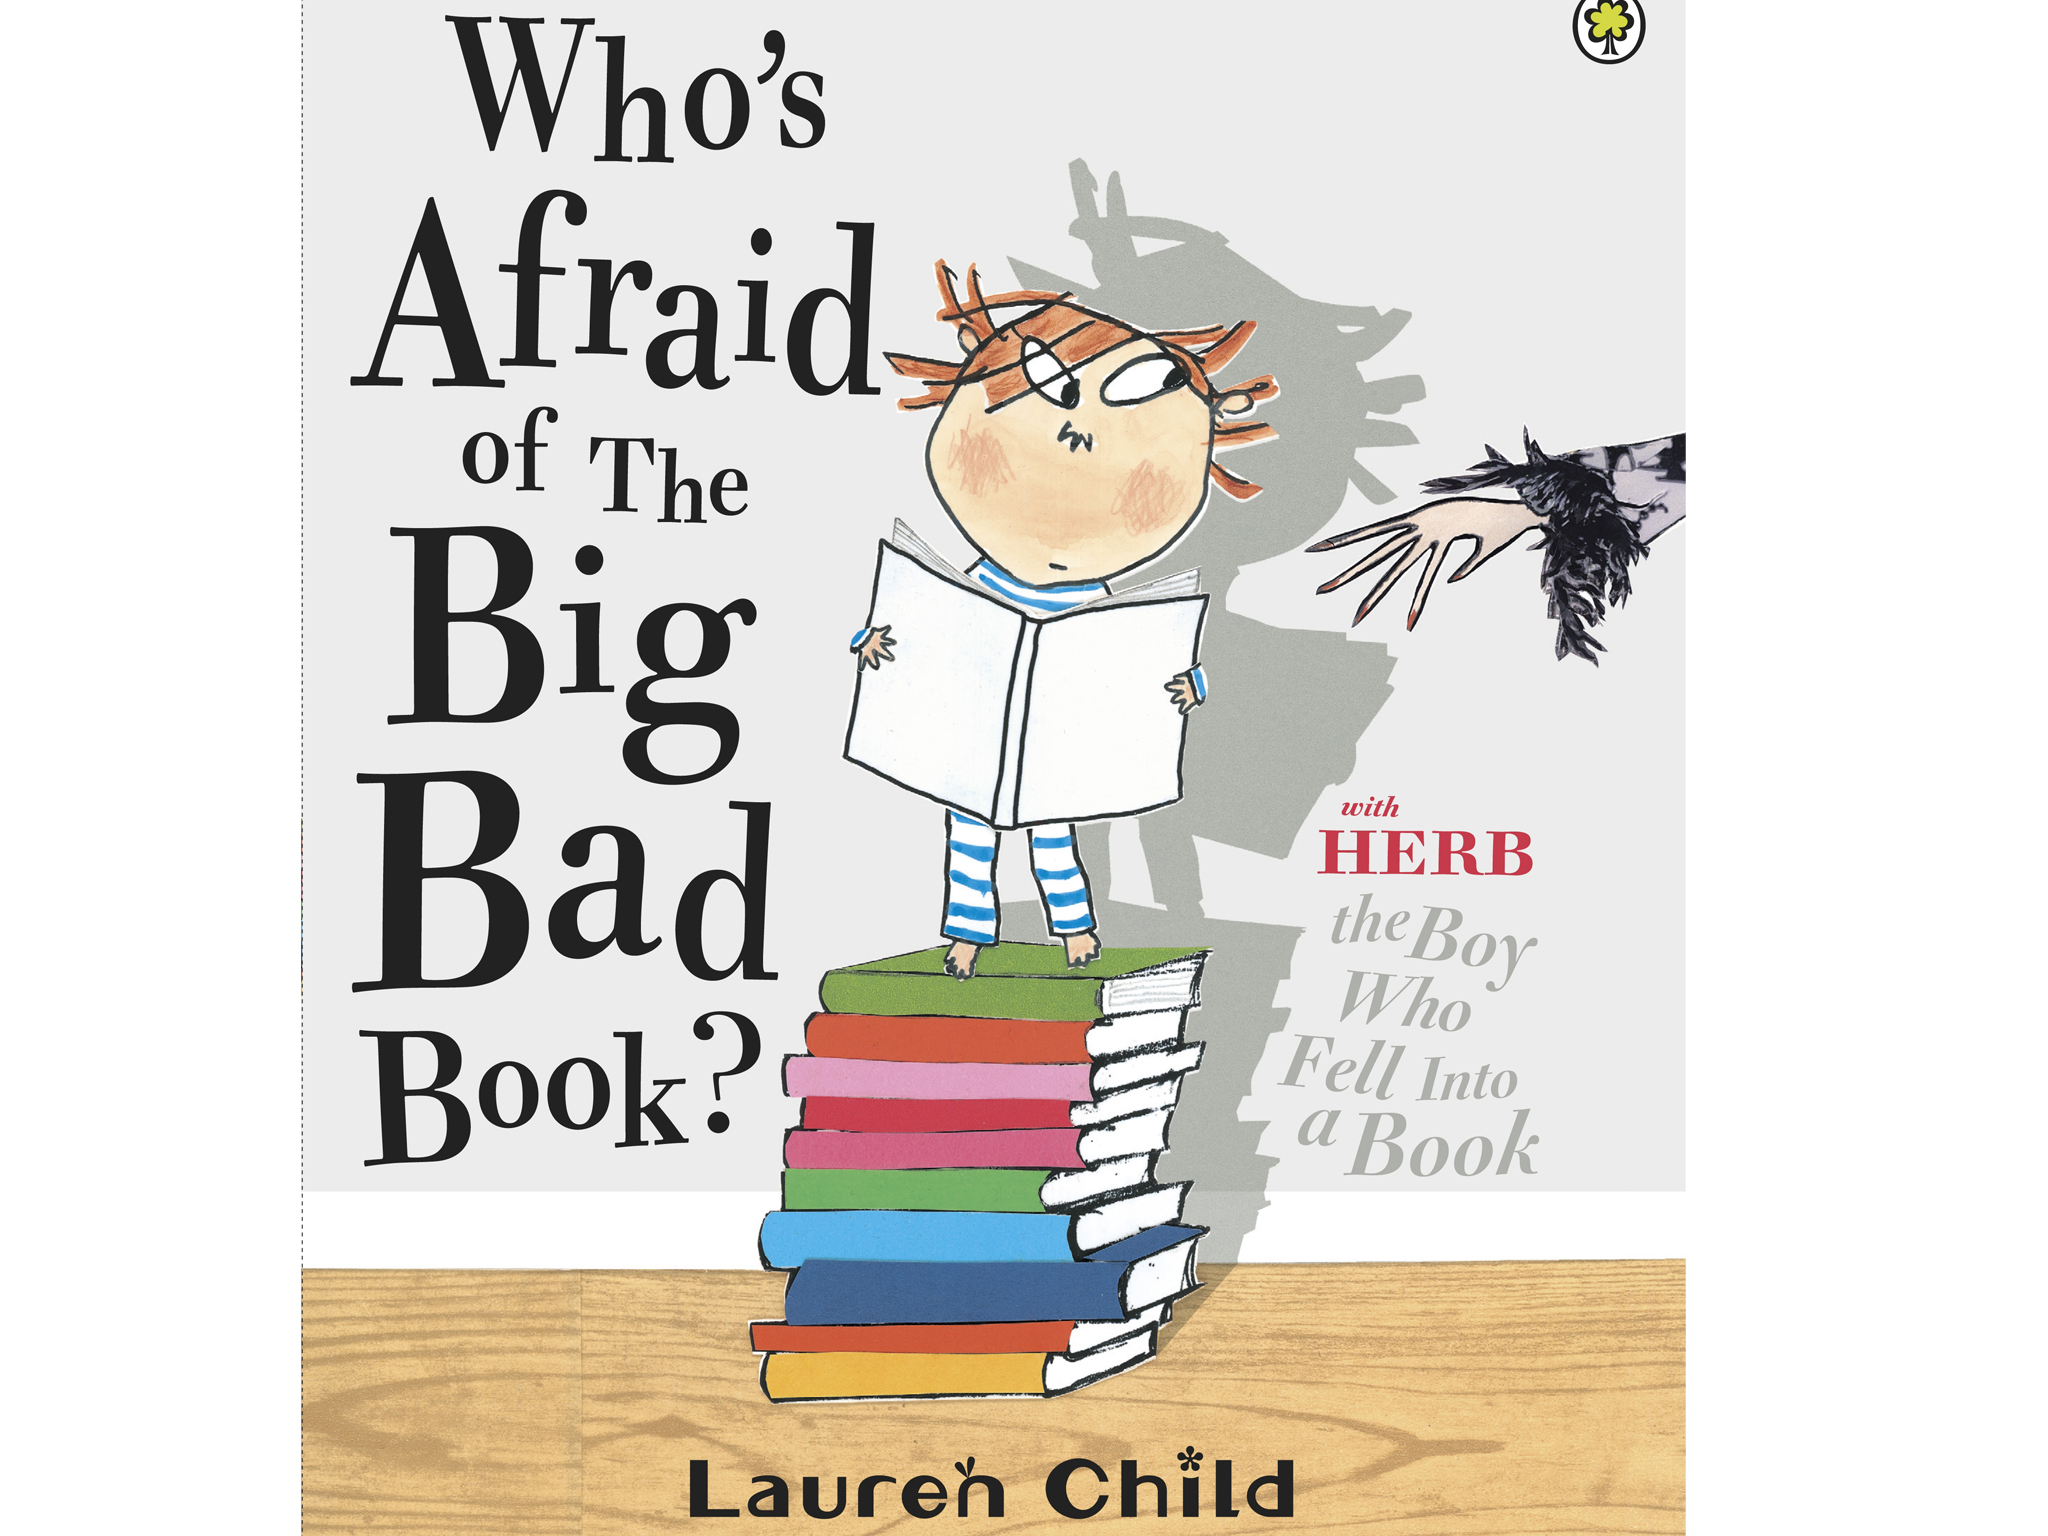 100 best children's books: Who's Afraid of the Big Bad Book?